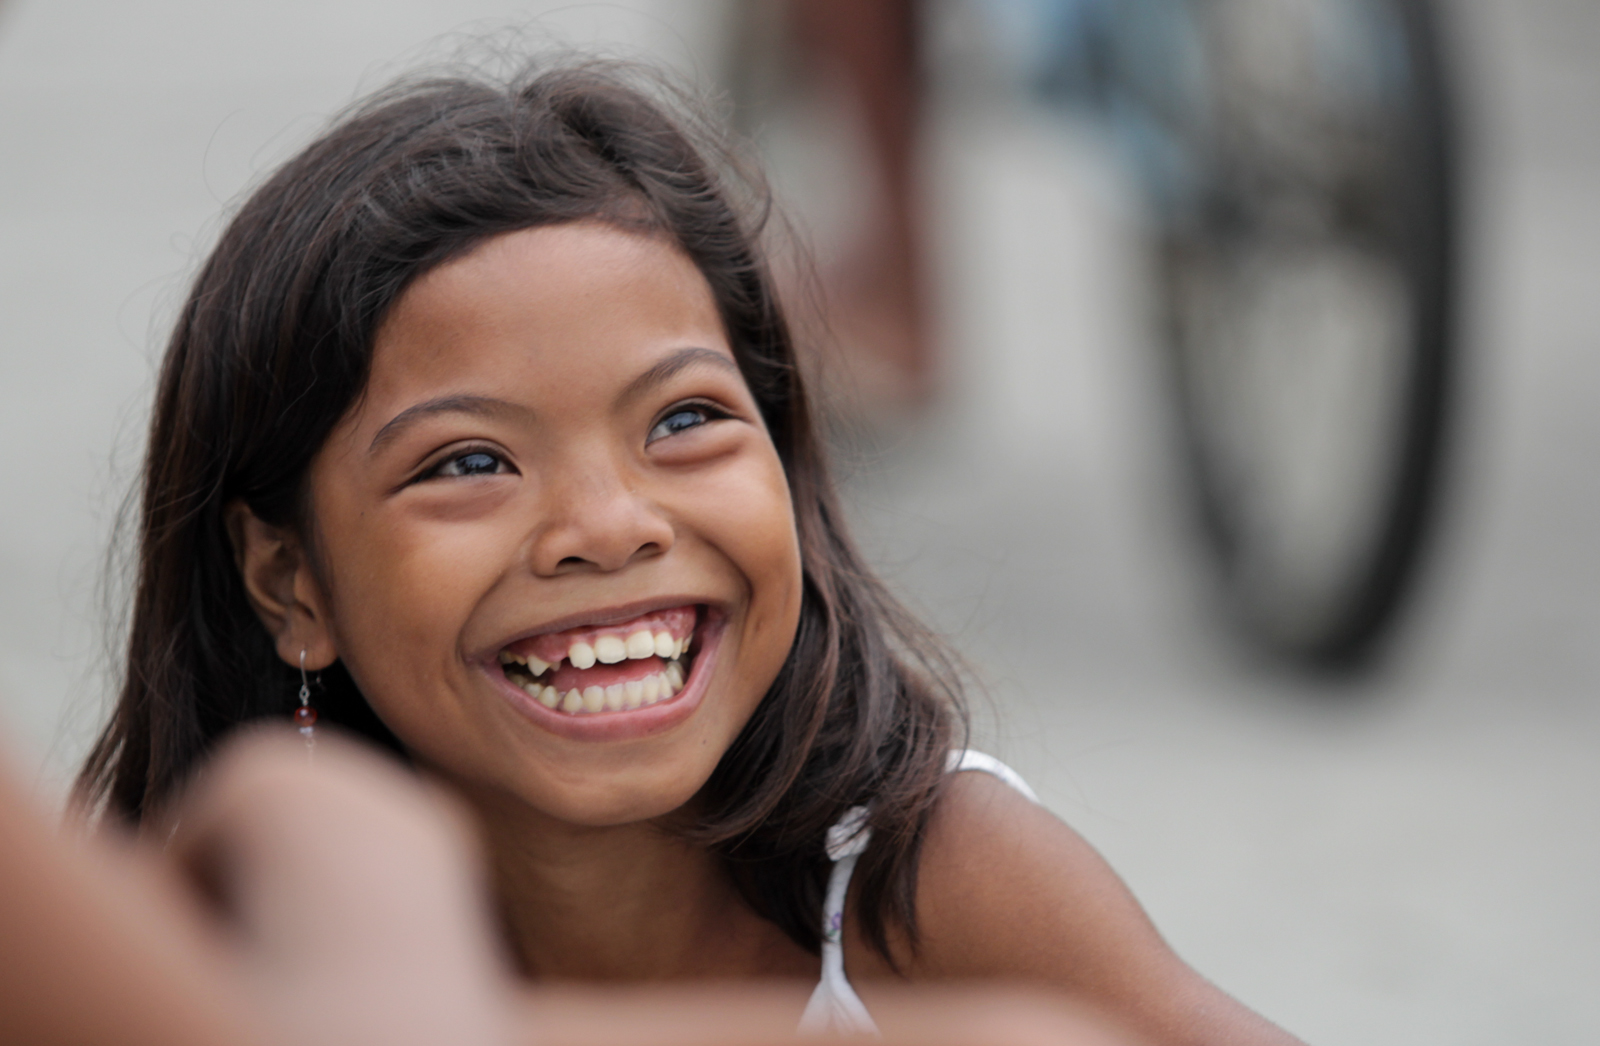 Filipino girl smiling